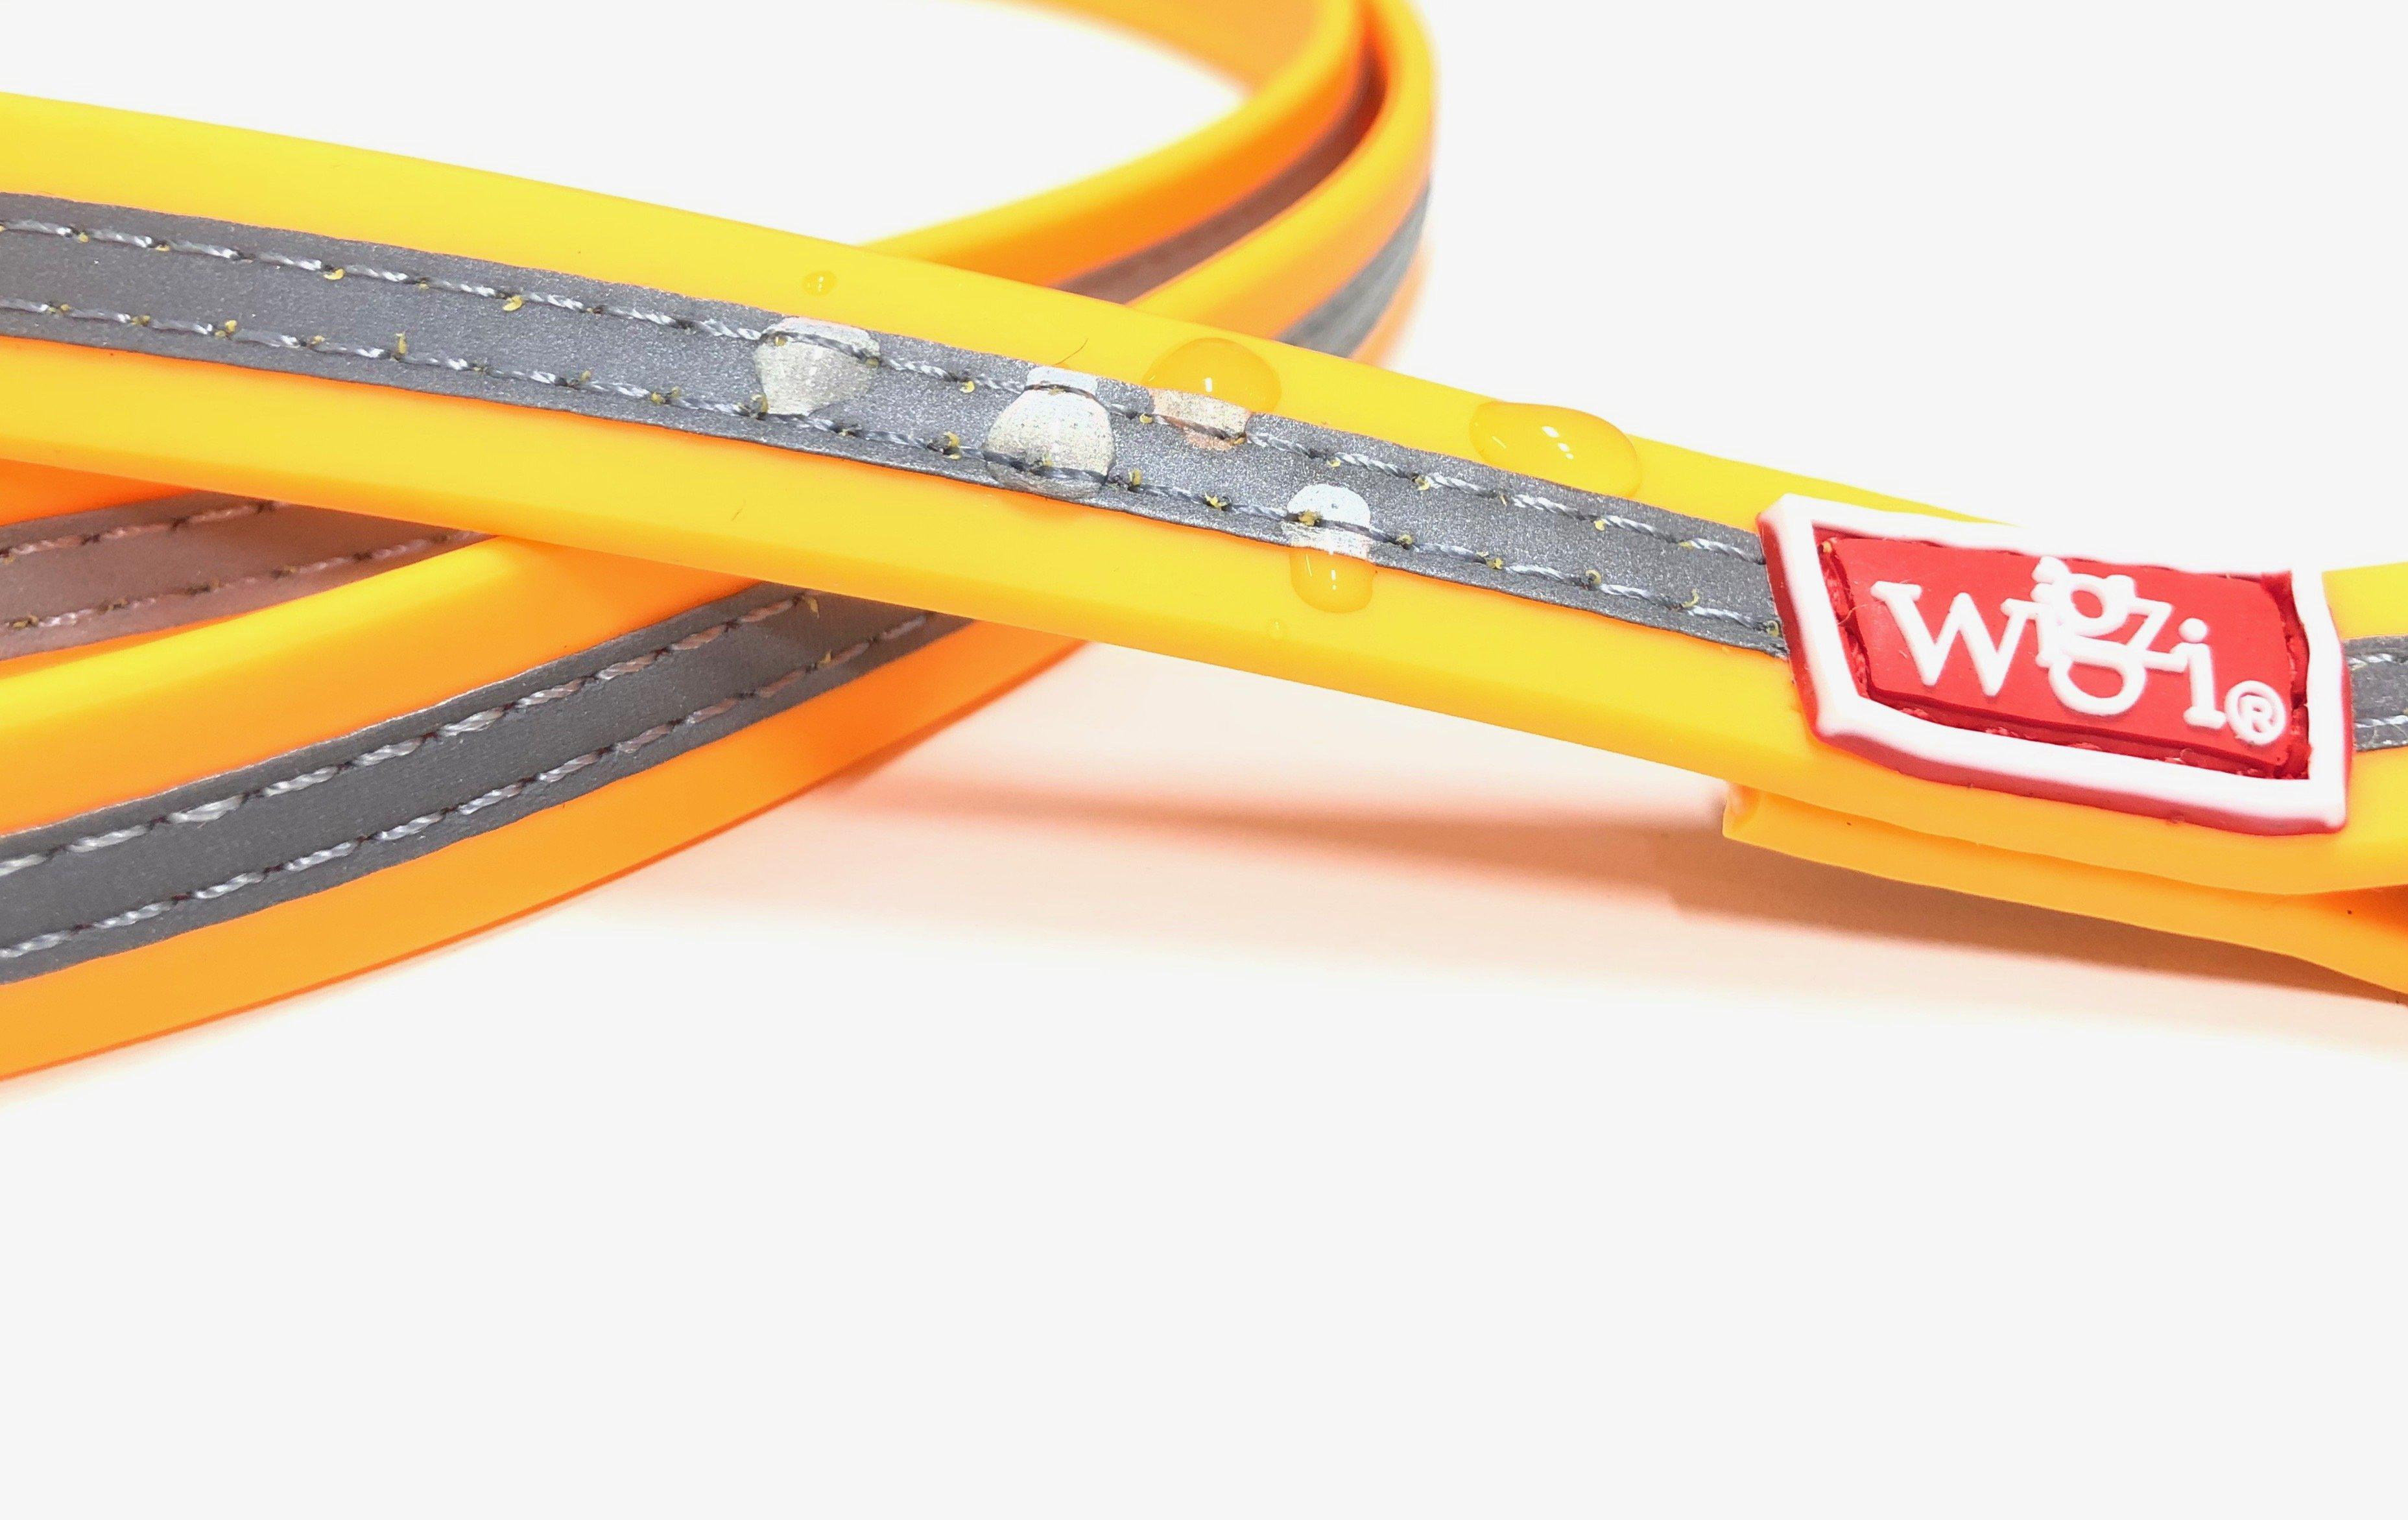 heavy duty waterproof dog leash in yellow